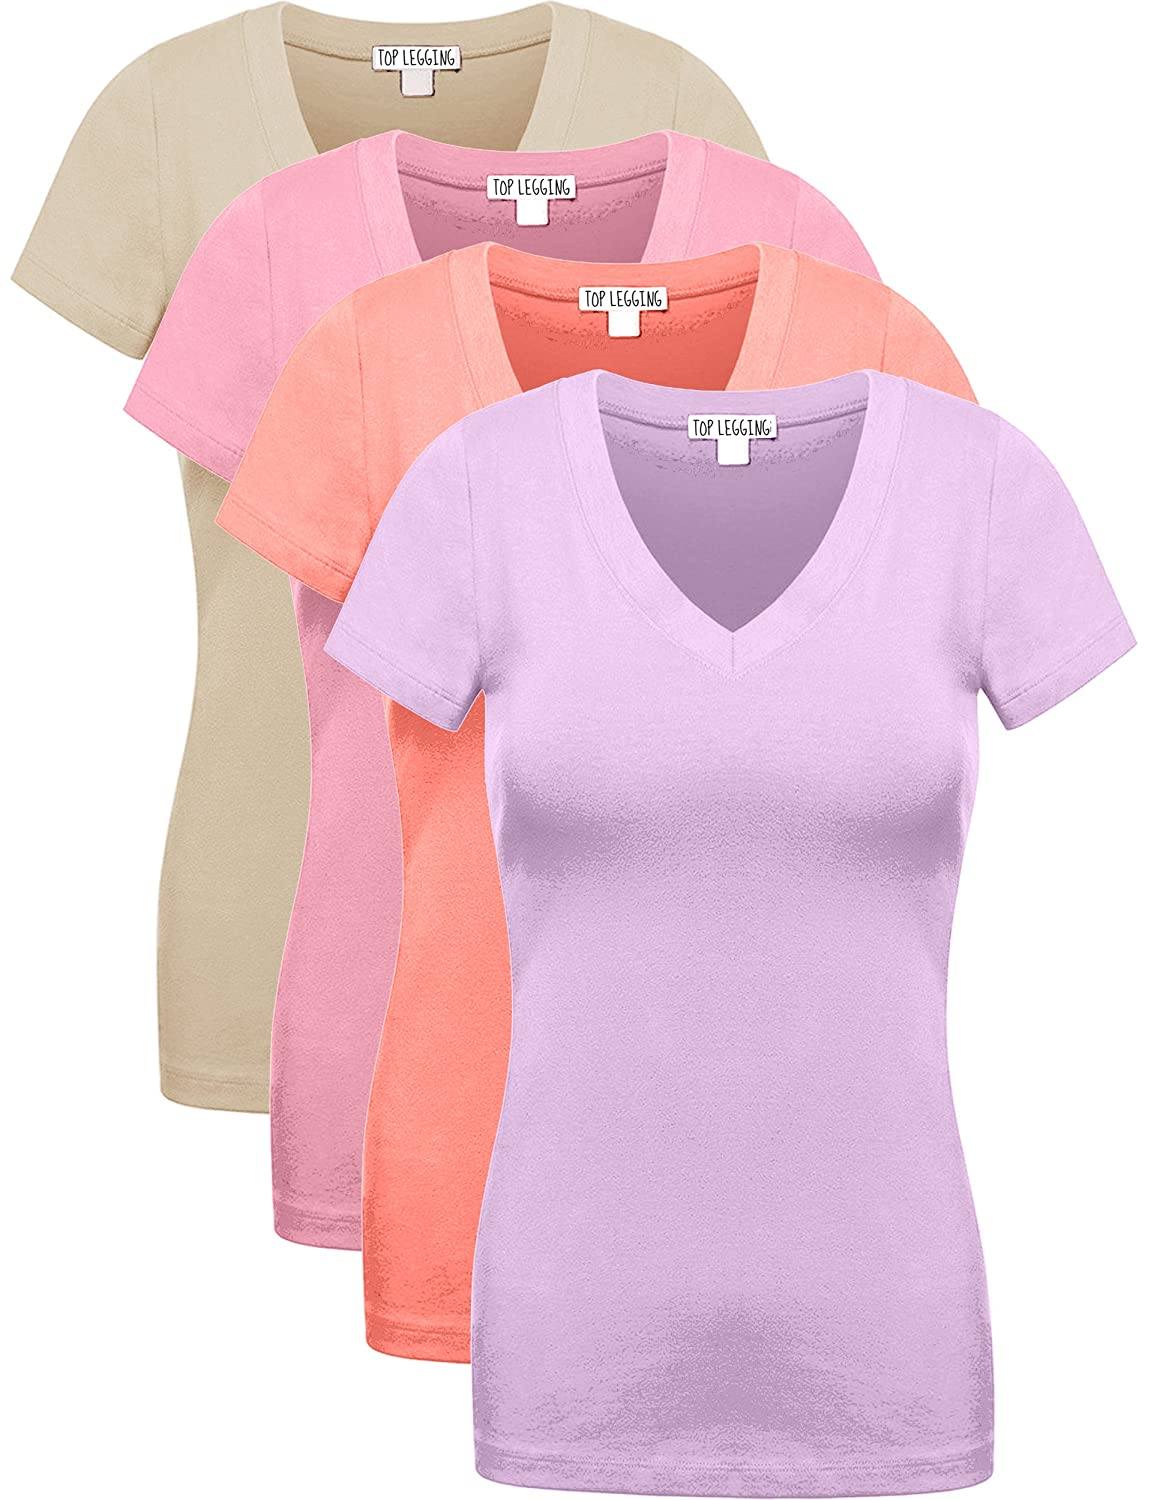 Comfy Basic Cotton Short Sleeves Solid V-Neck Plain T-Shirts for Women - Pack of 4 or 6 – by TOP LEGGING TL-GT3009R